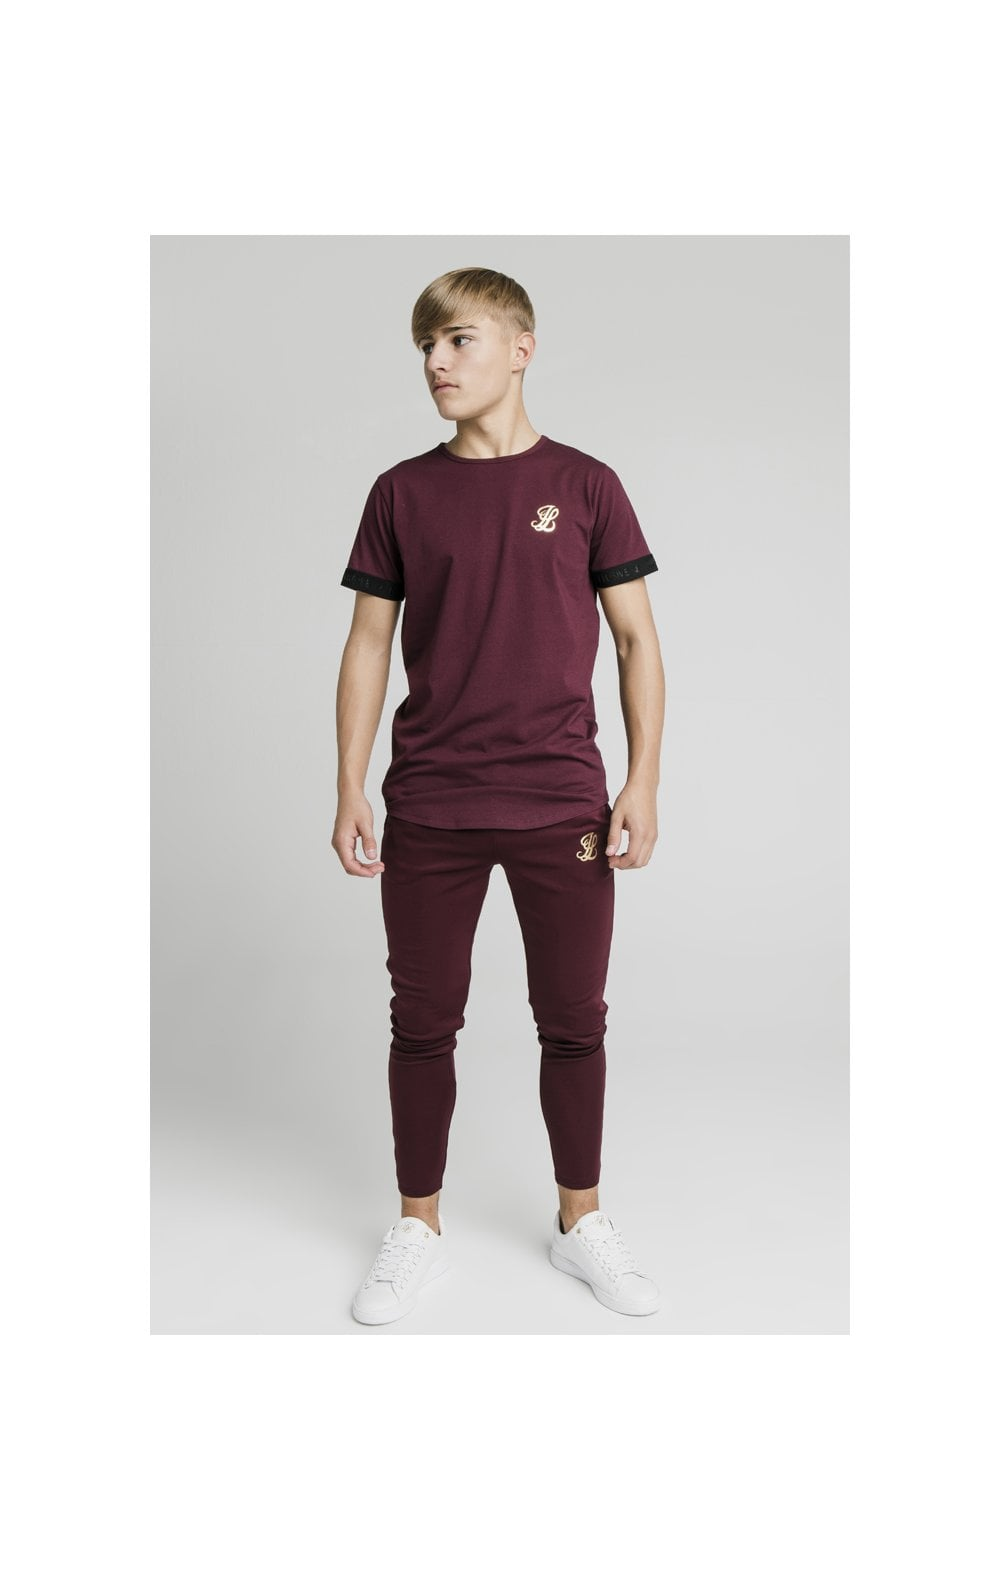 Illusive London Agility Track Pants - Burgundy (4)